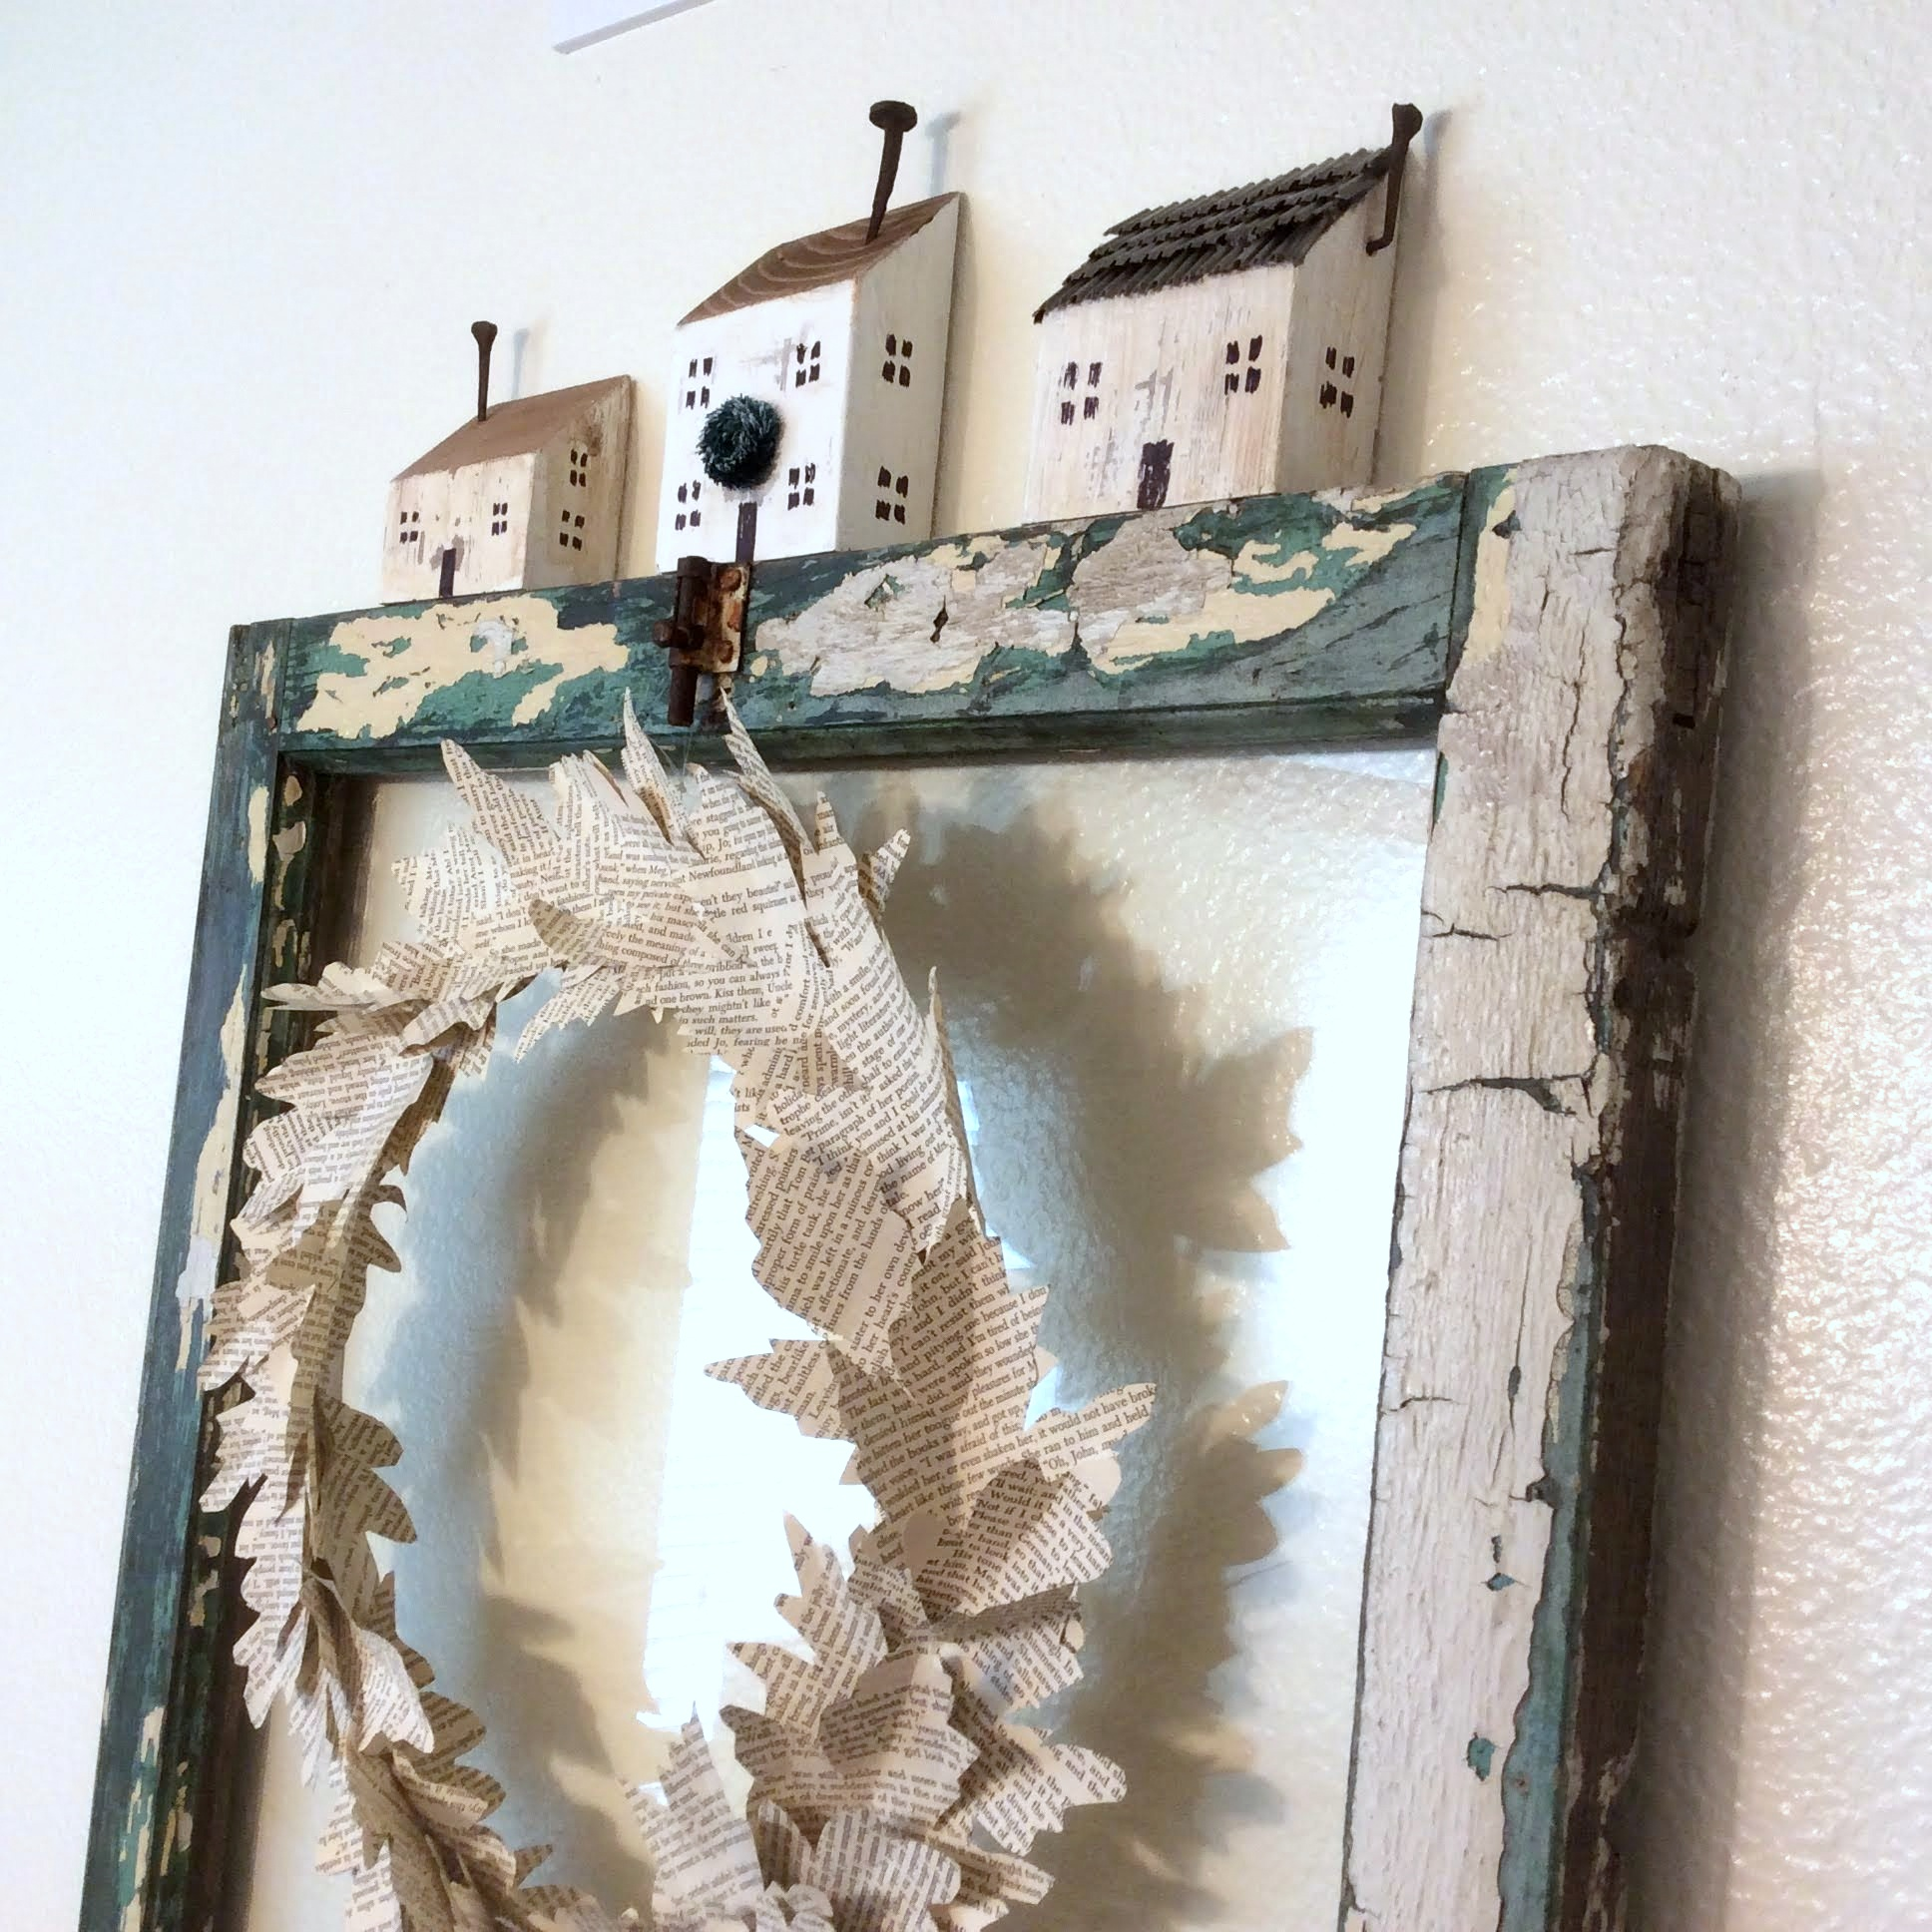 Wood scrap houses by Fresh Vintage By Lisa S, featured in DIY Salvaged Junk Projects 557 on Funky Junk!